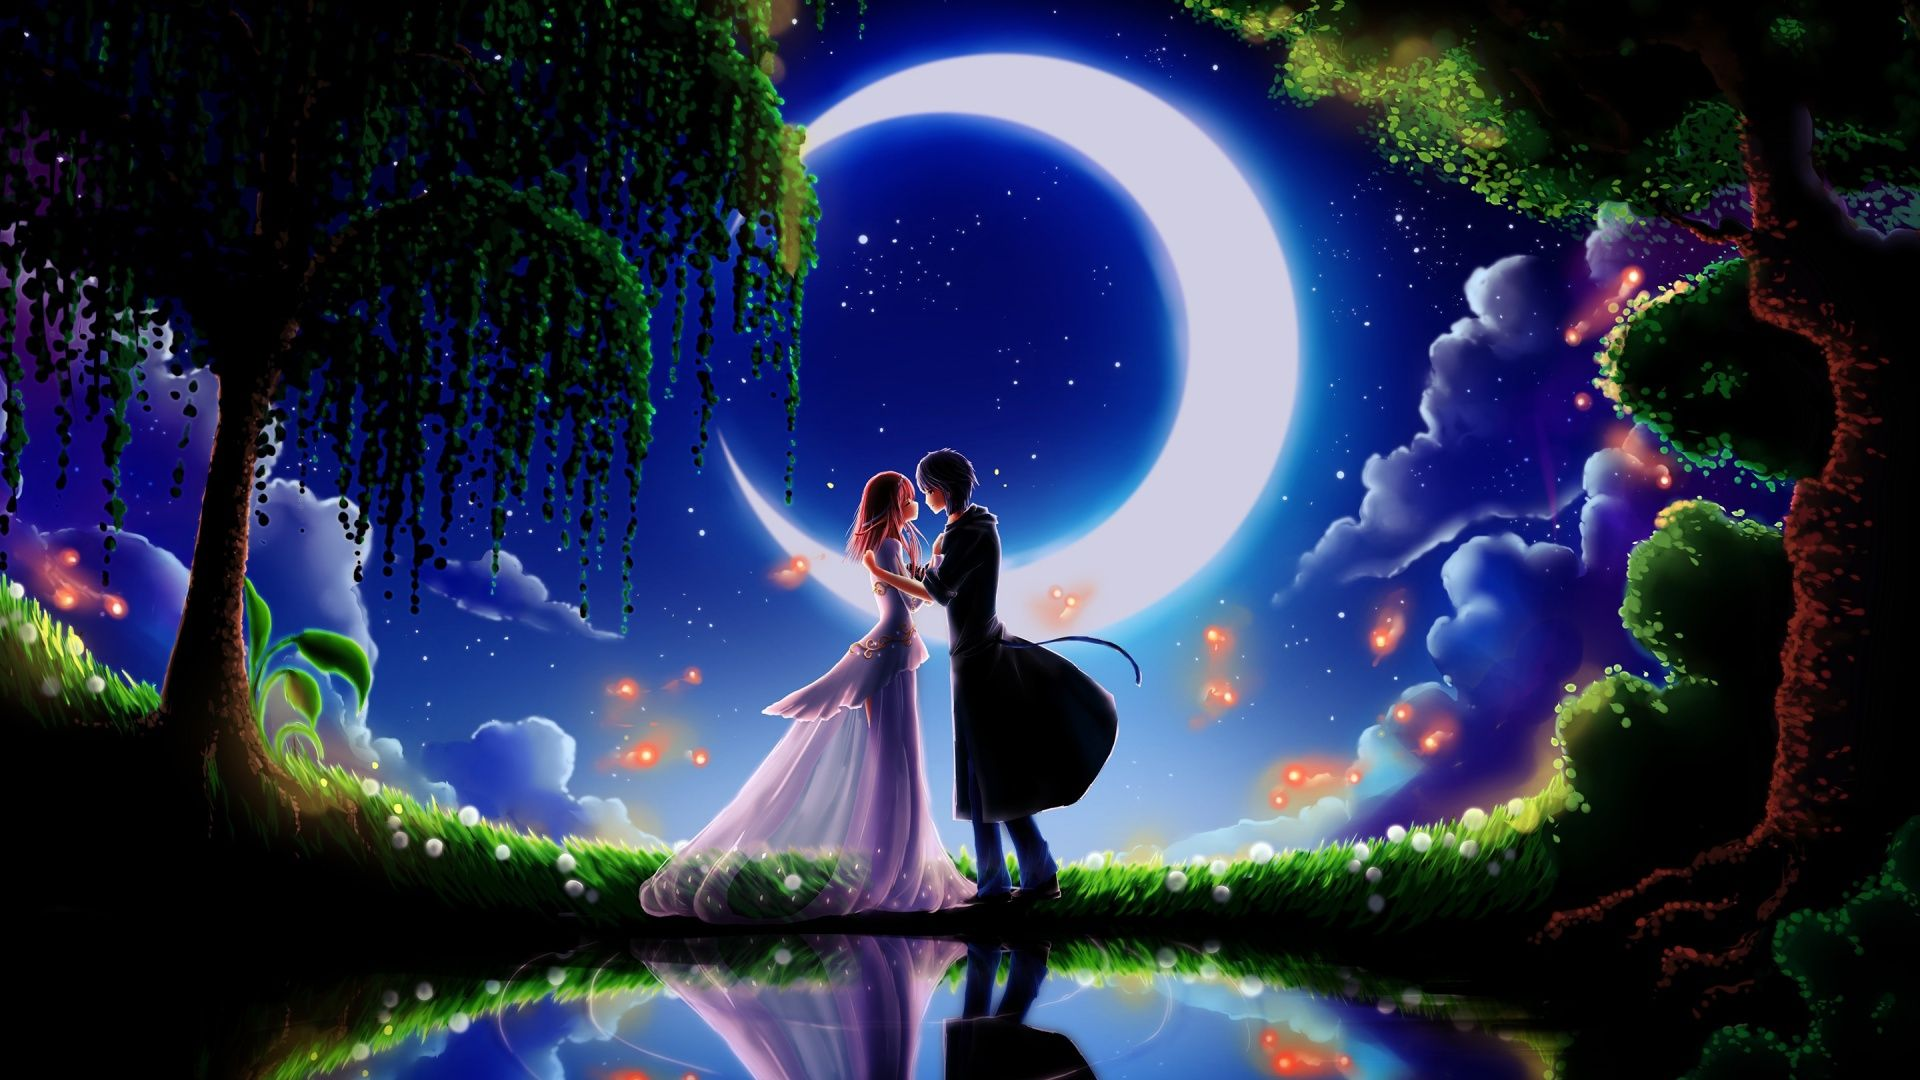 Moonlight kiss Wallpaper in 1920x1080 Love horoscope